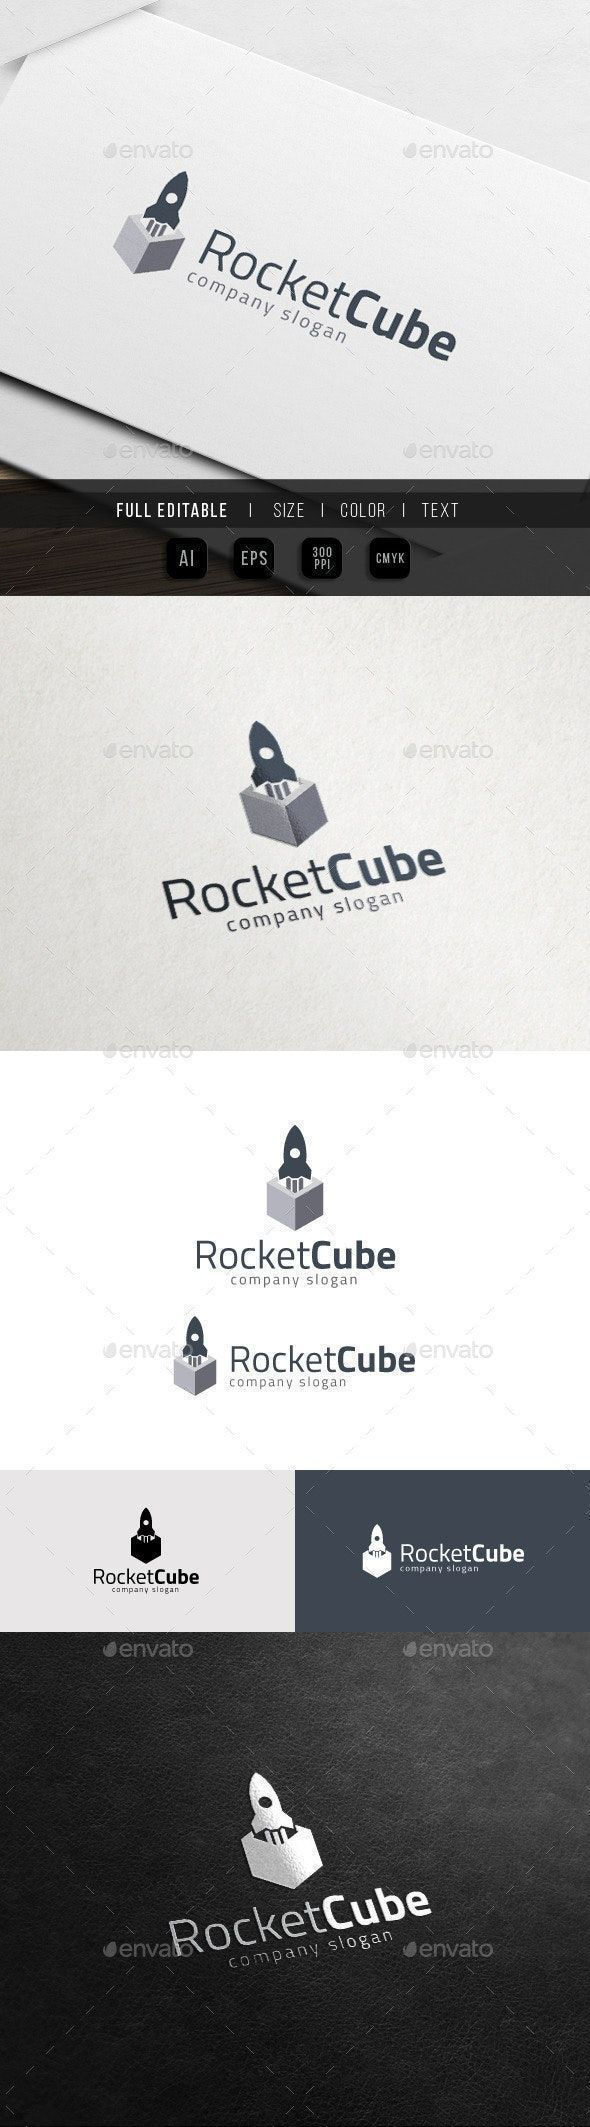 Rocket Box  Launch Startup  Up Logobox  Rocket Box  Launch Startup  Up Logobox